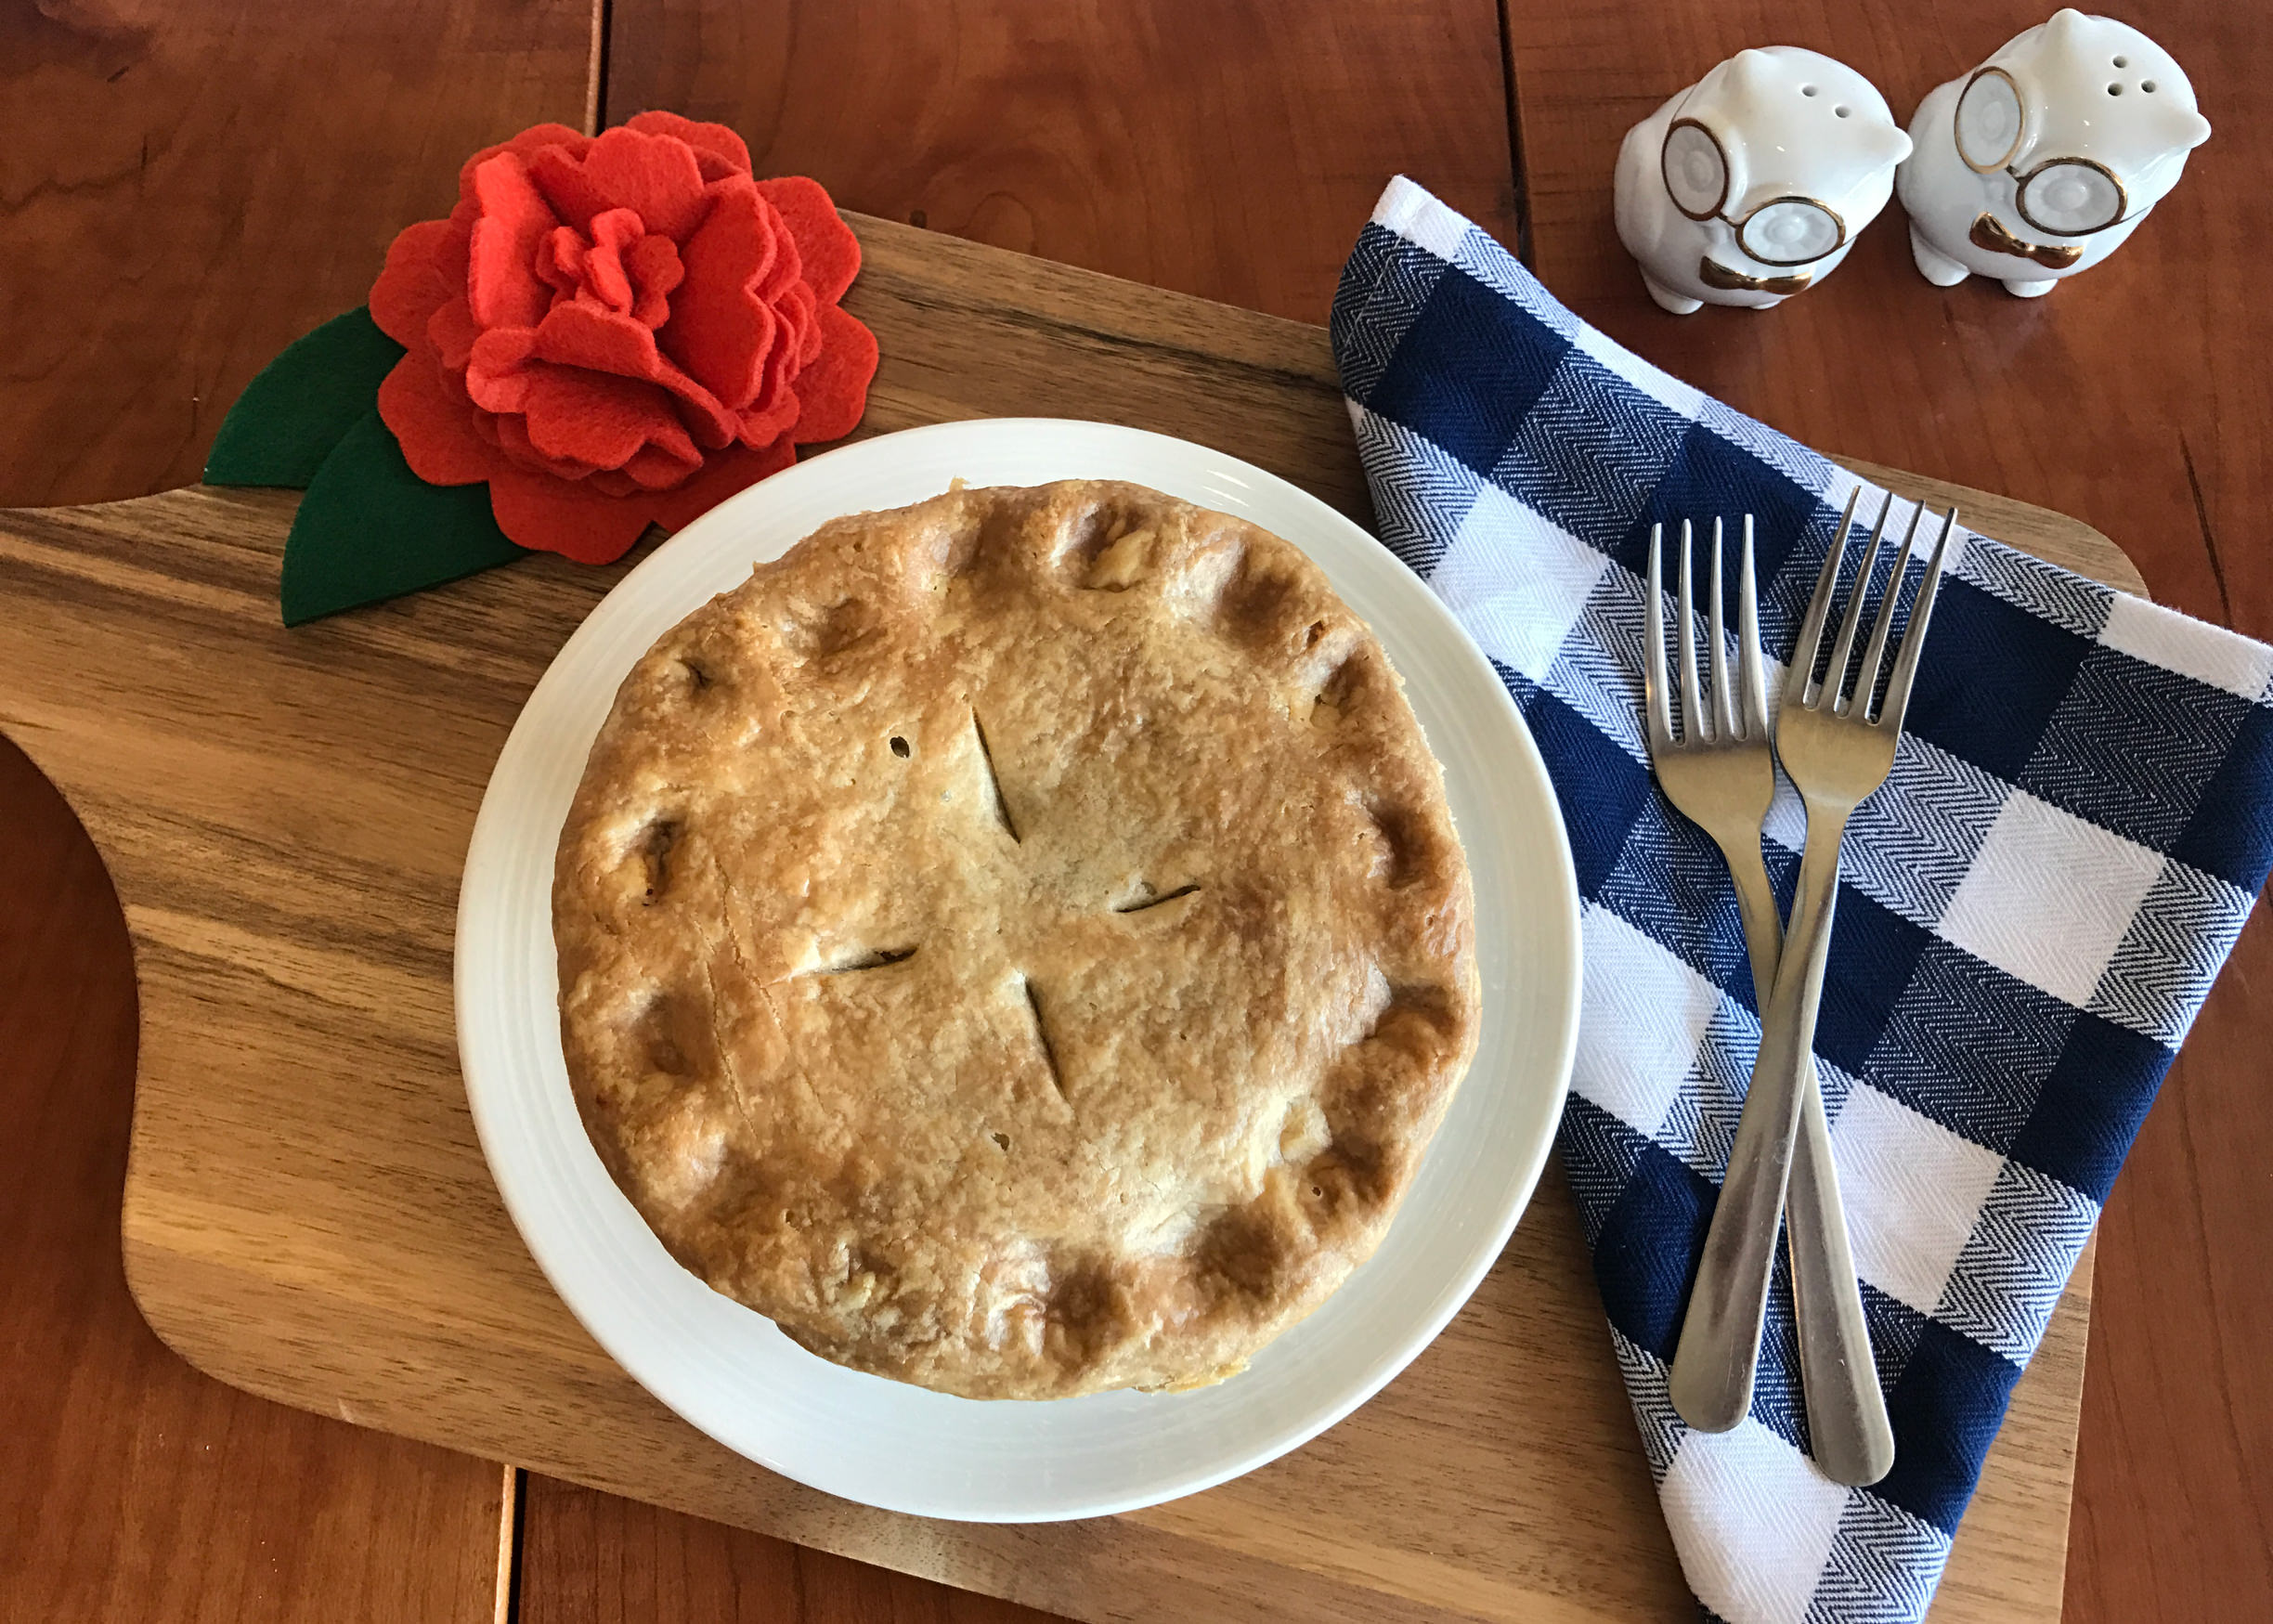 Plate full of a Maui Pie pie